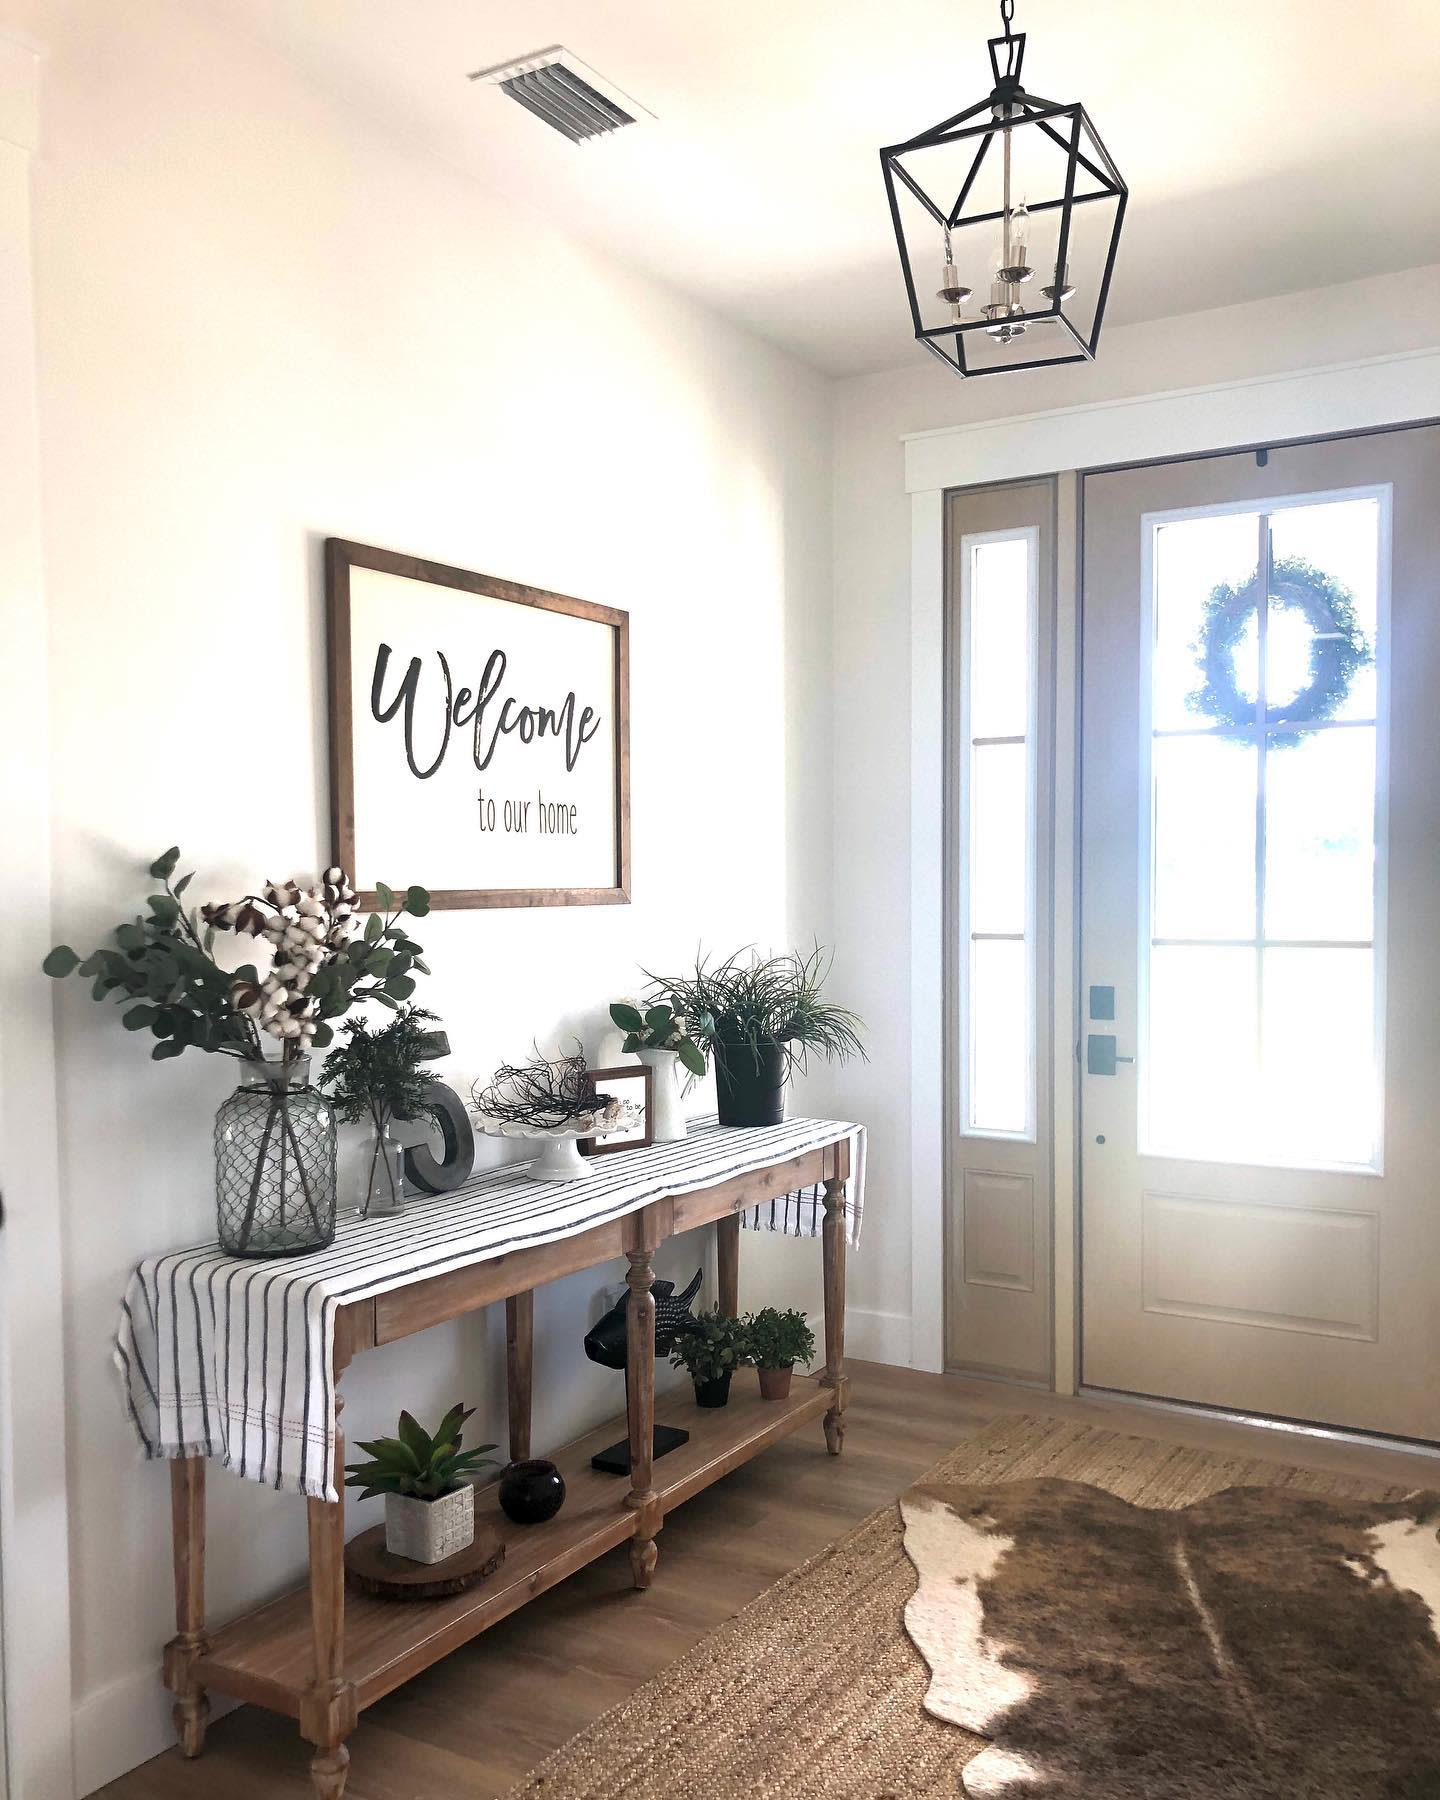 House Welcome Sign Ideas -designingthedays